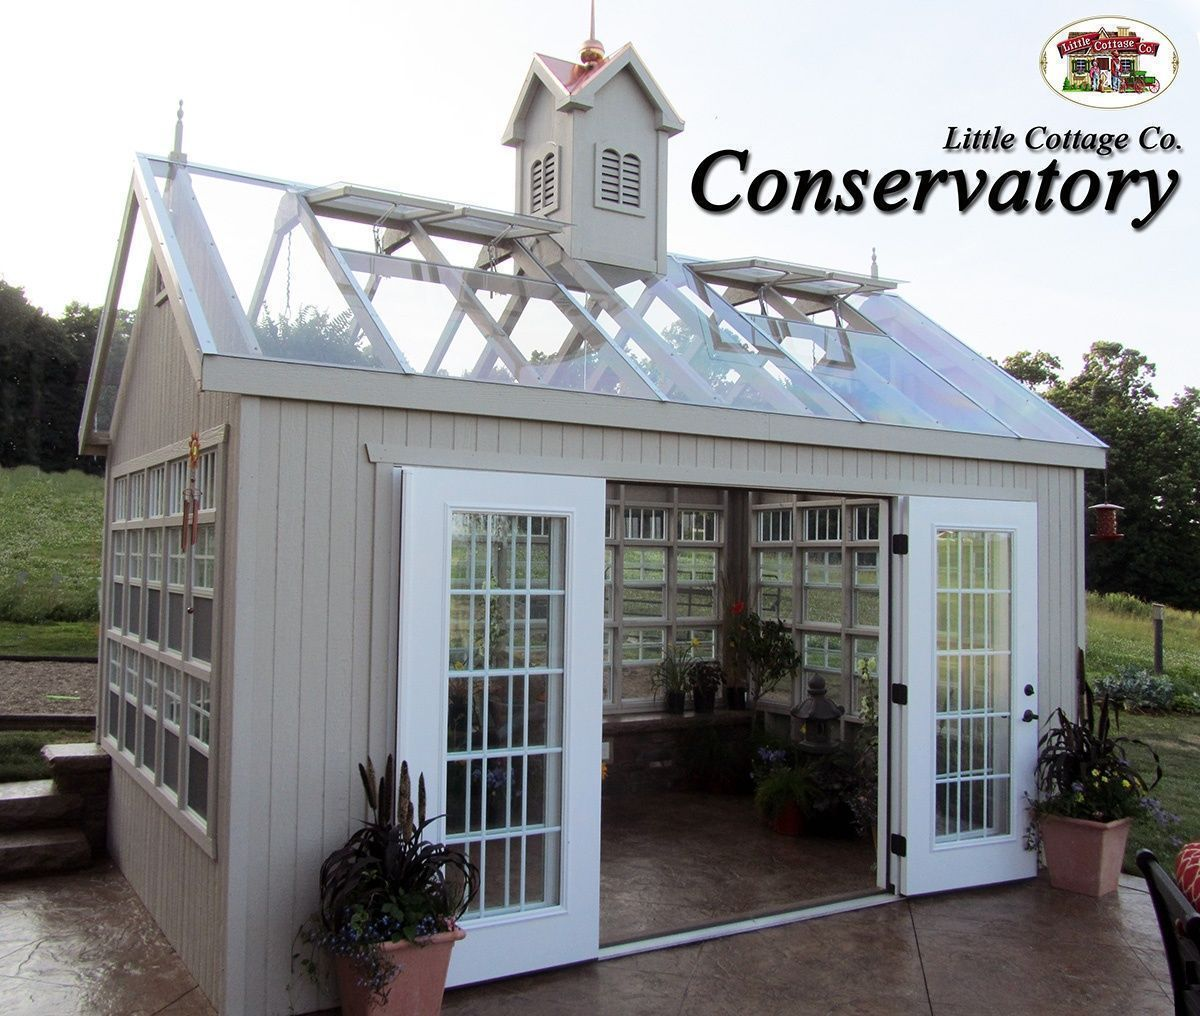 The Conservatory Greenhouse From Little Cottage Company Can Make A Great She Shed Conservatorygreenhouse Building A Shed What Is A Conservatory Shed Plans